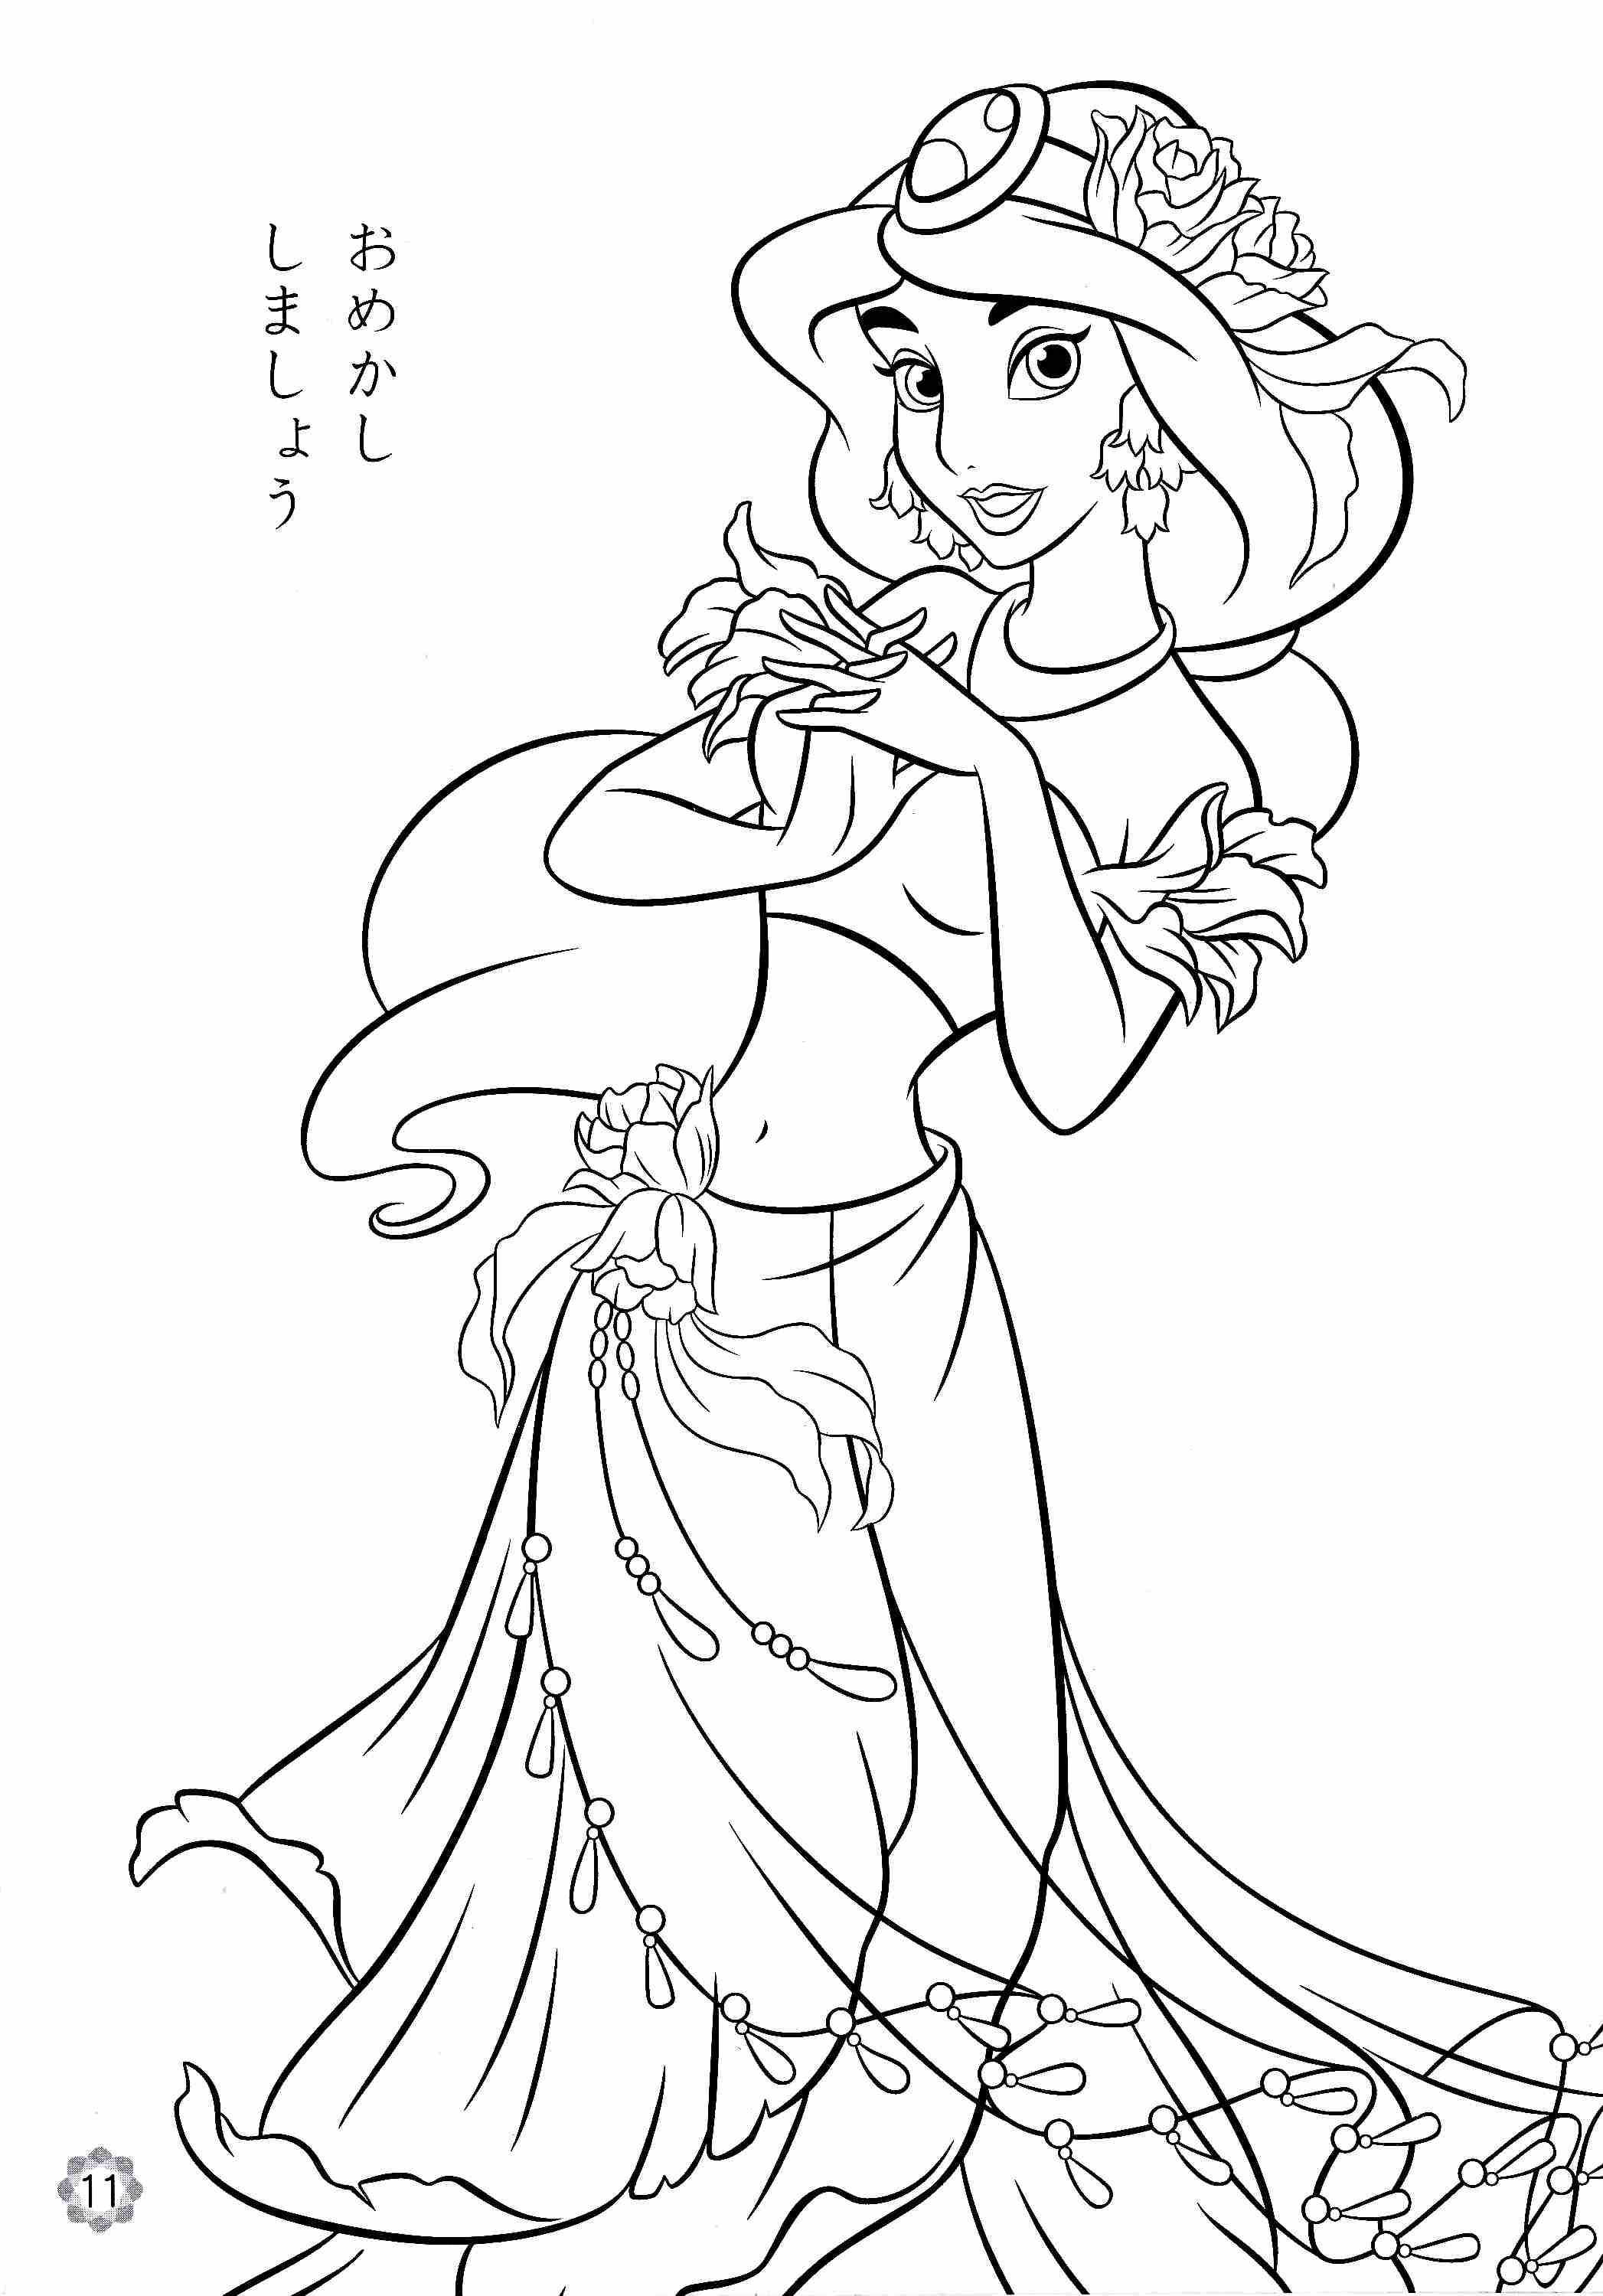 2094x2999 Realistic Princess Coloring Pages For Adults Funny Print Pict